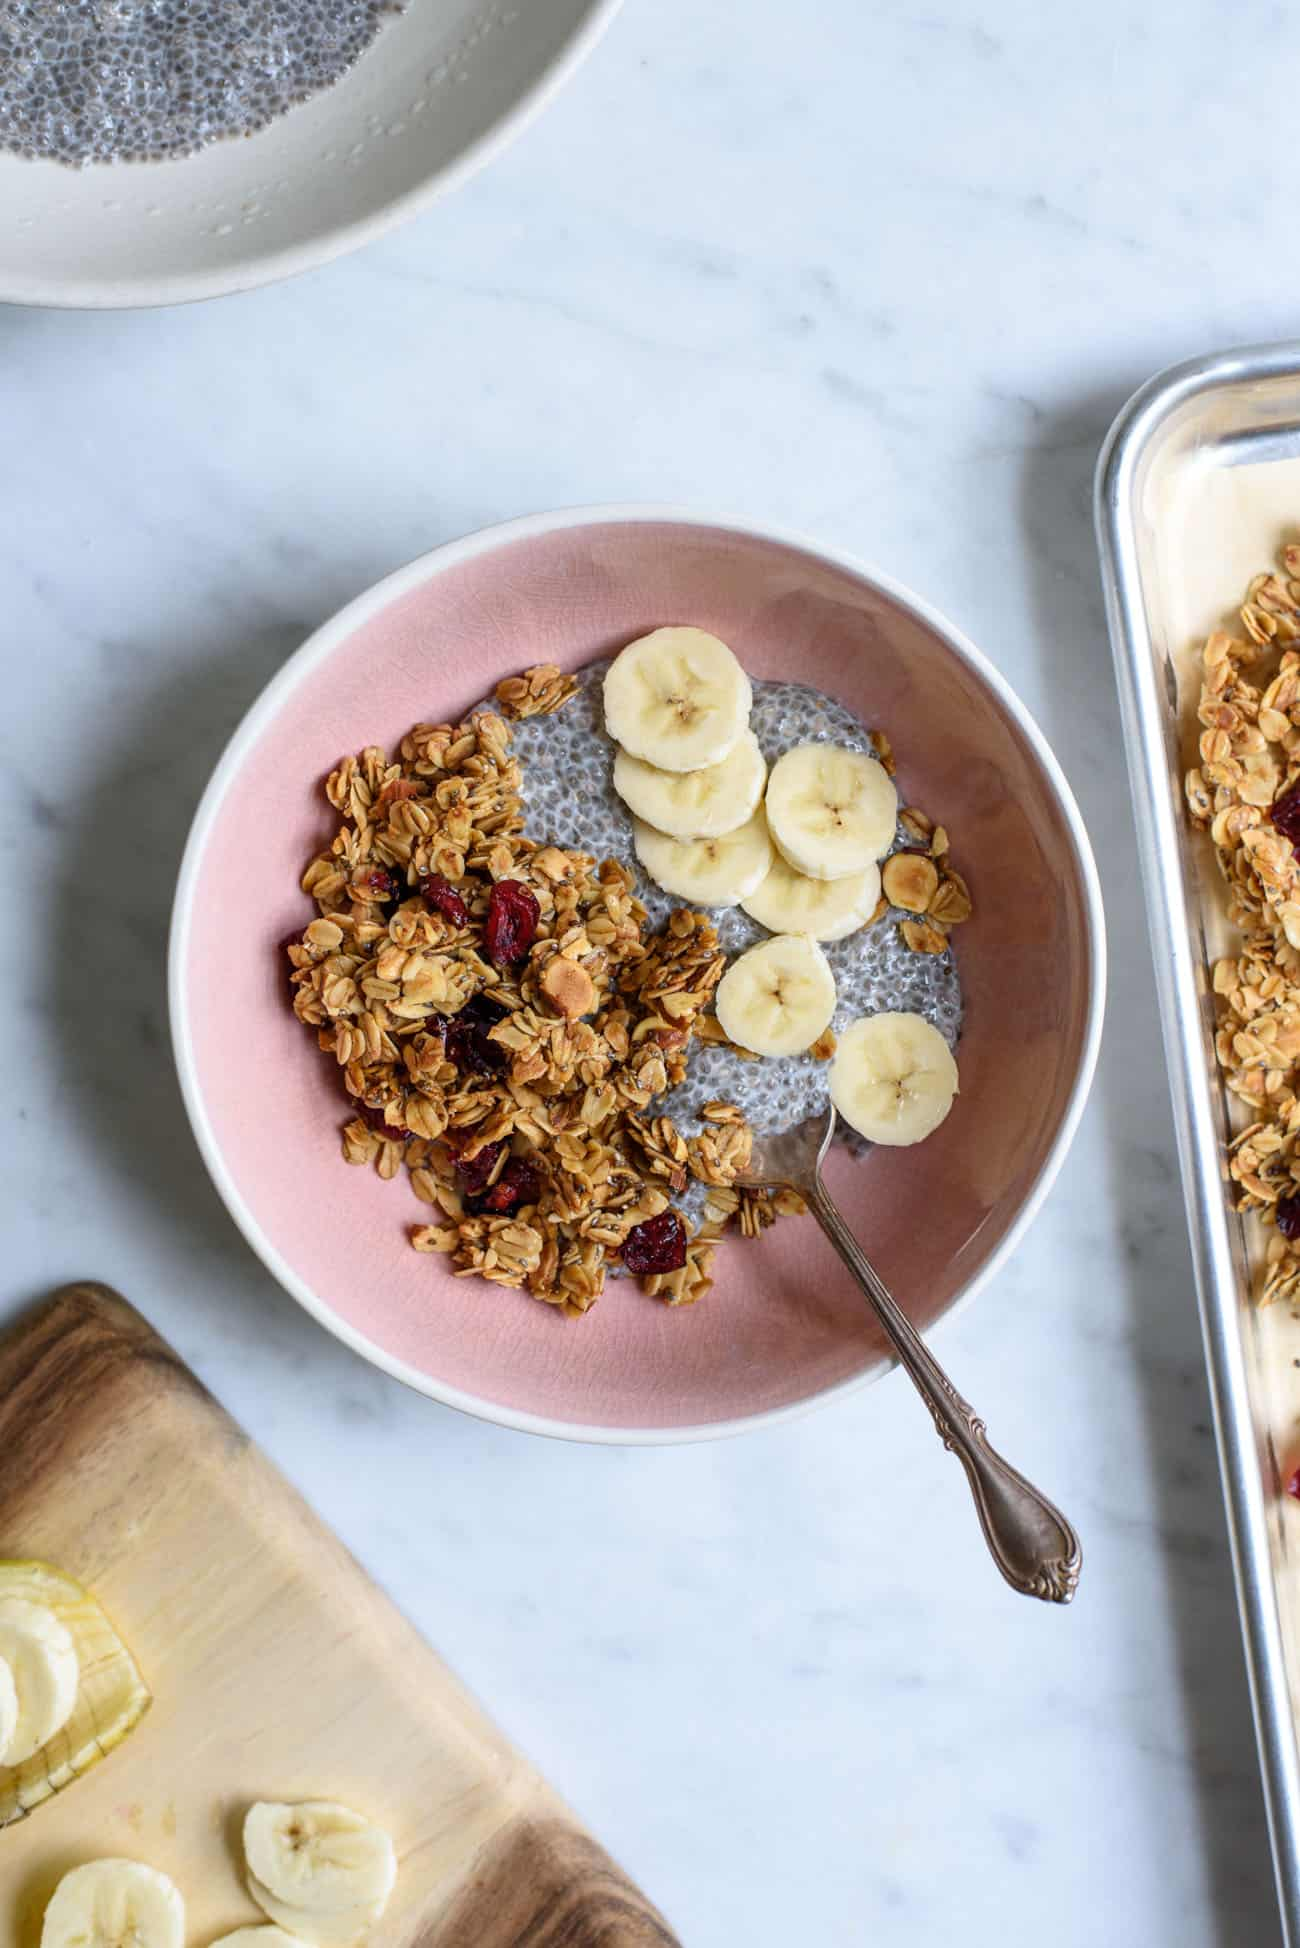 Pink bowl with chia pudding, granola, and bananas